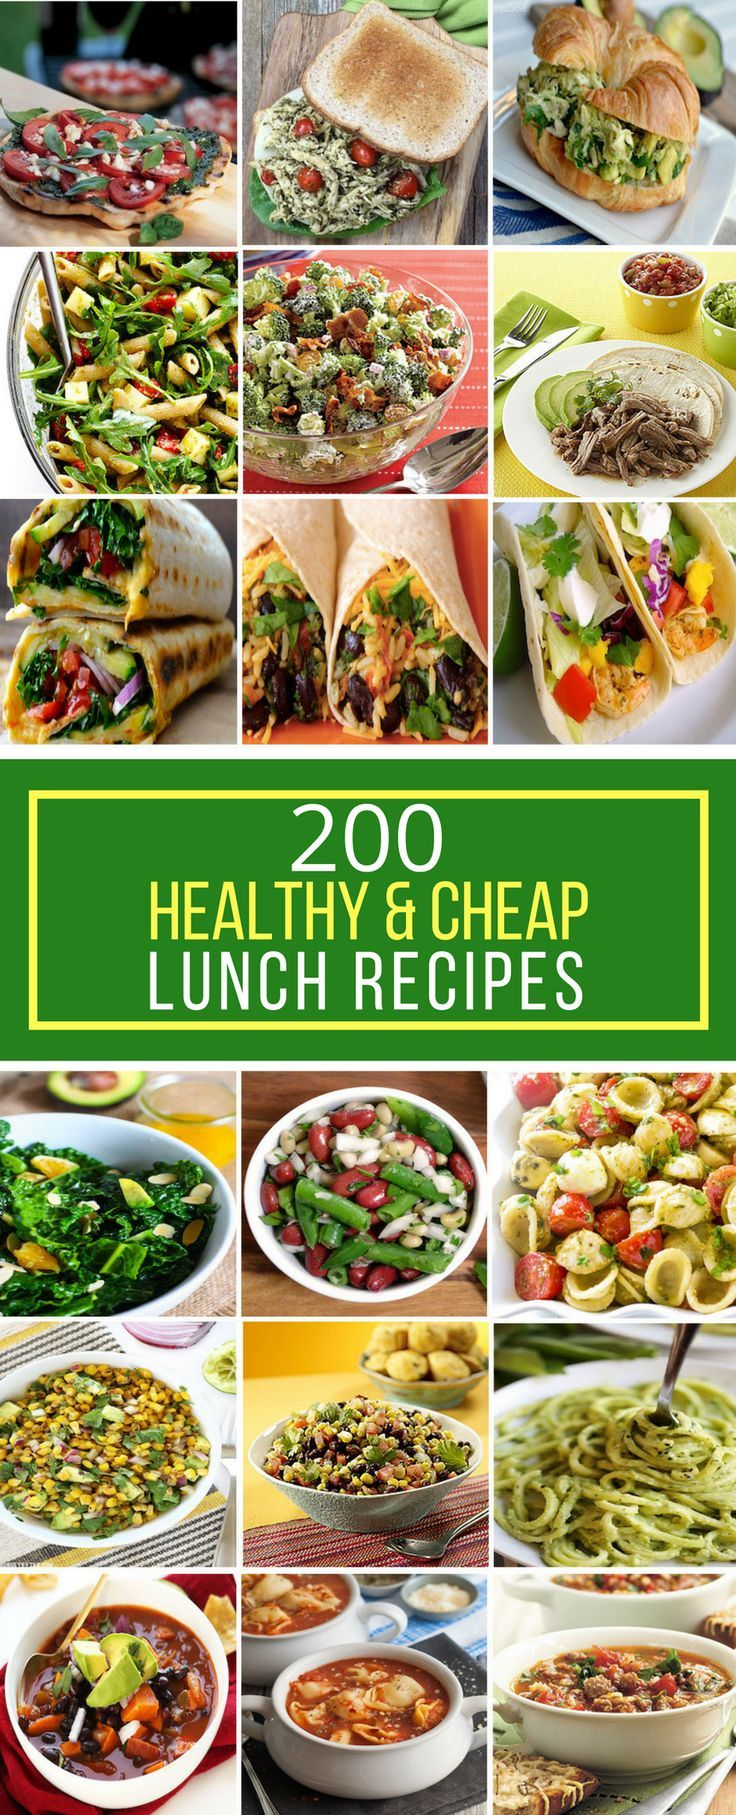 200 healthy & cheap lunch recipes | recipes | pinterest | lunch